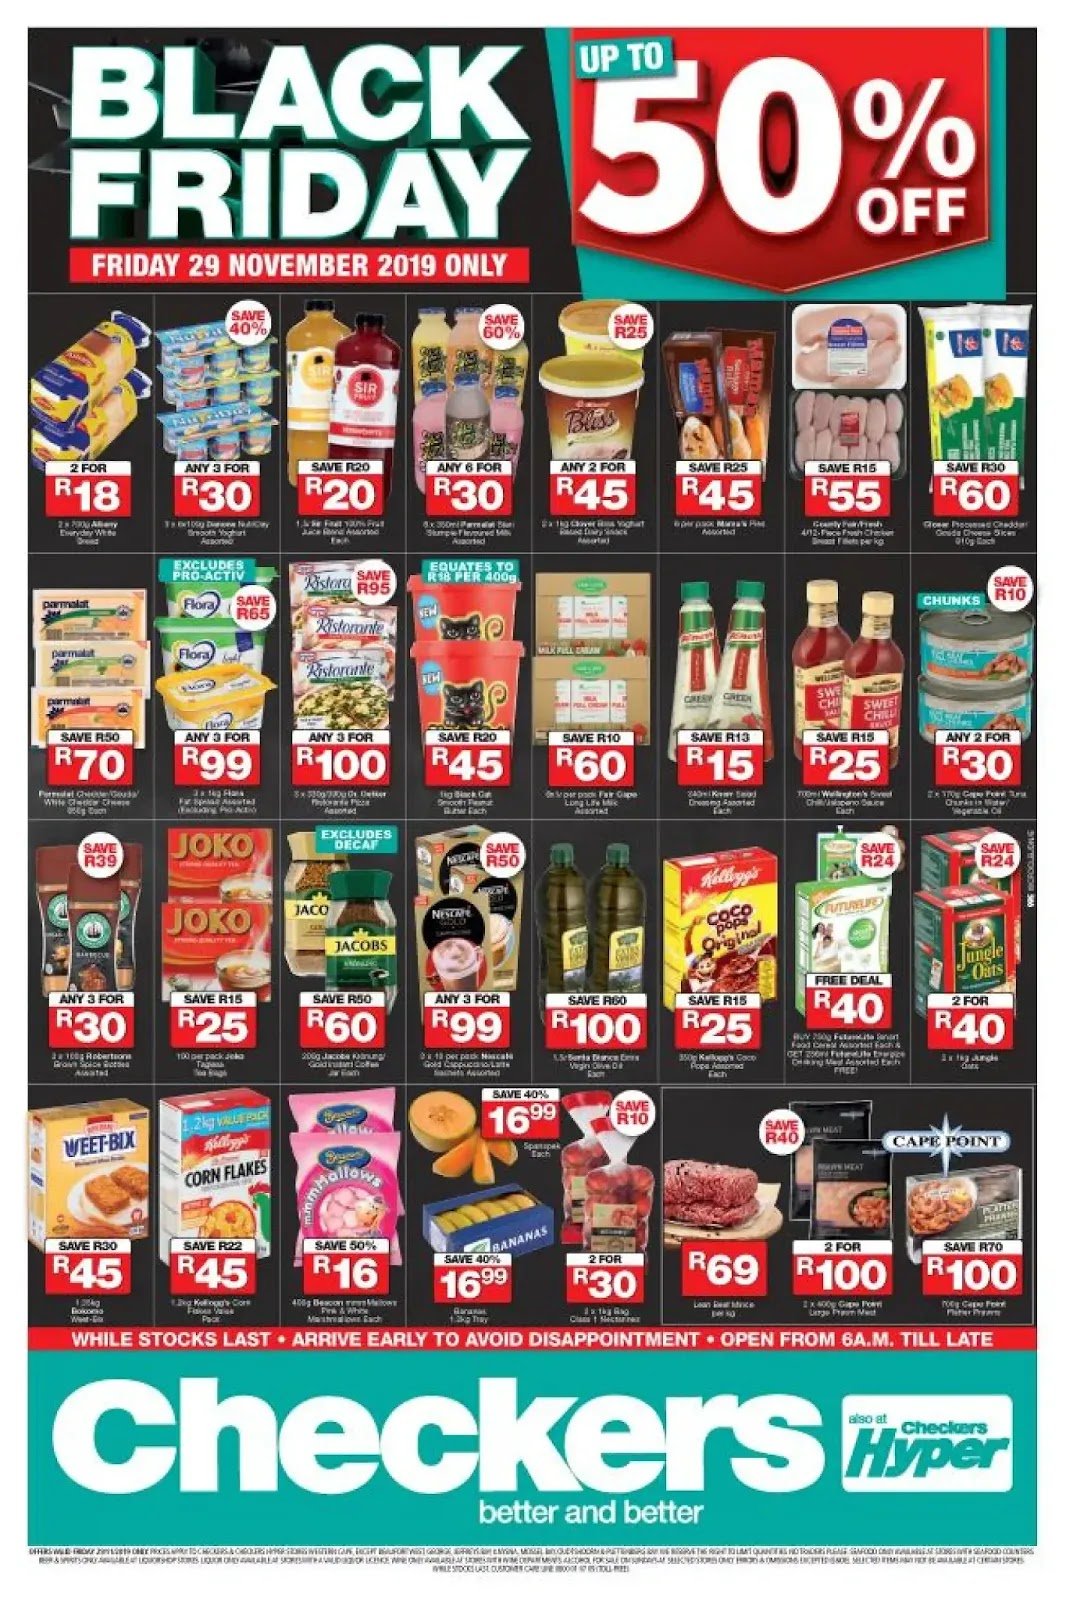 Updated 2019 Checkers Black Friday Deals Western Cape